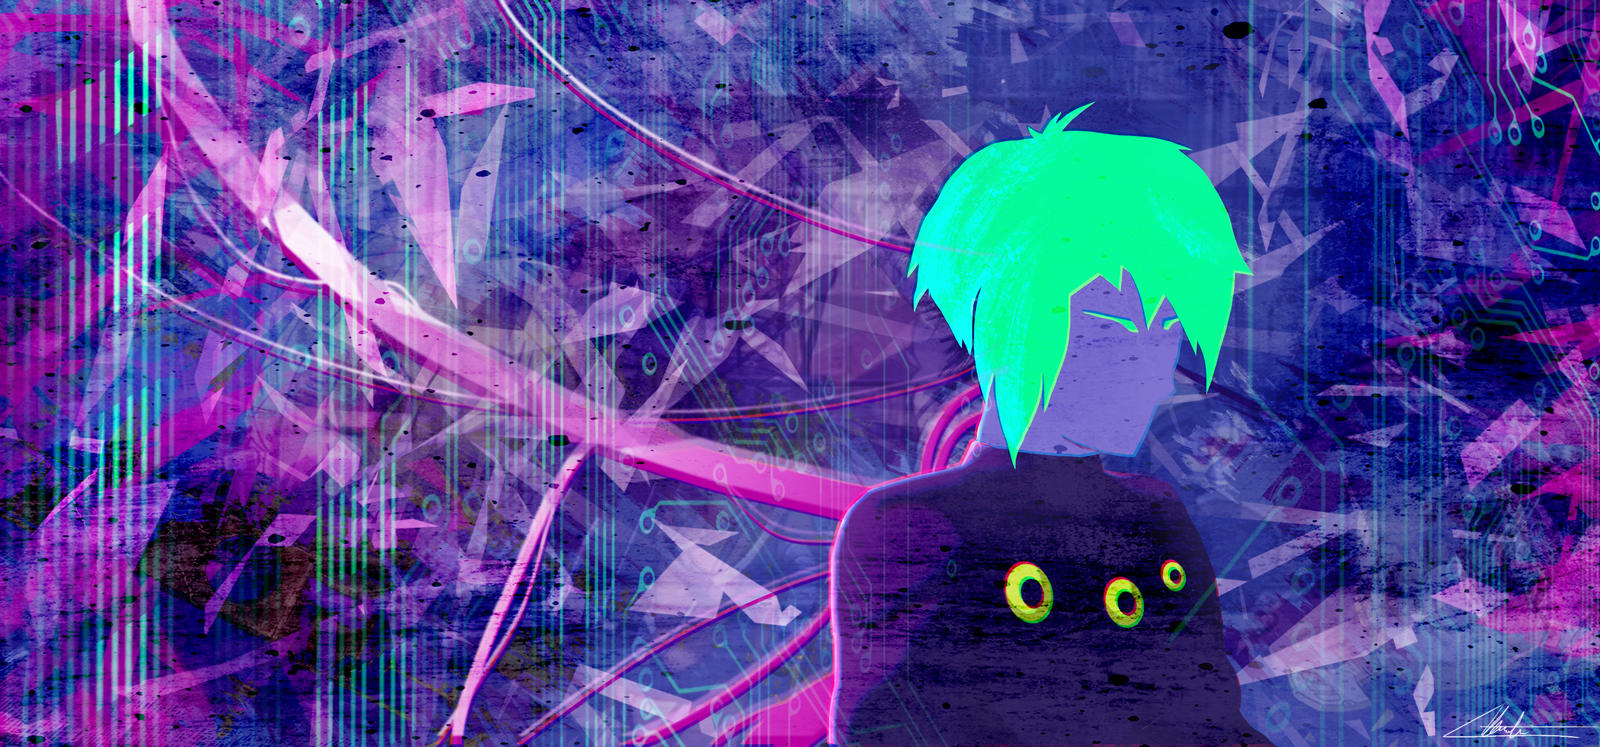 Neon Ghost In The Shell By Kaze33 On Deviantart